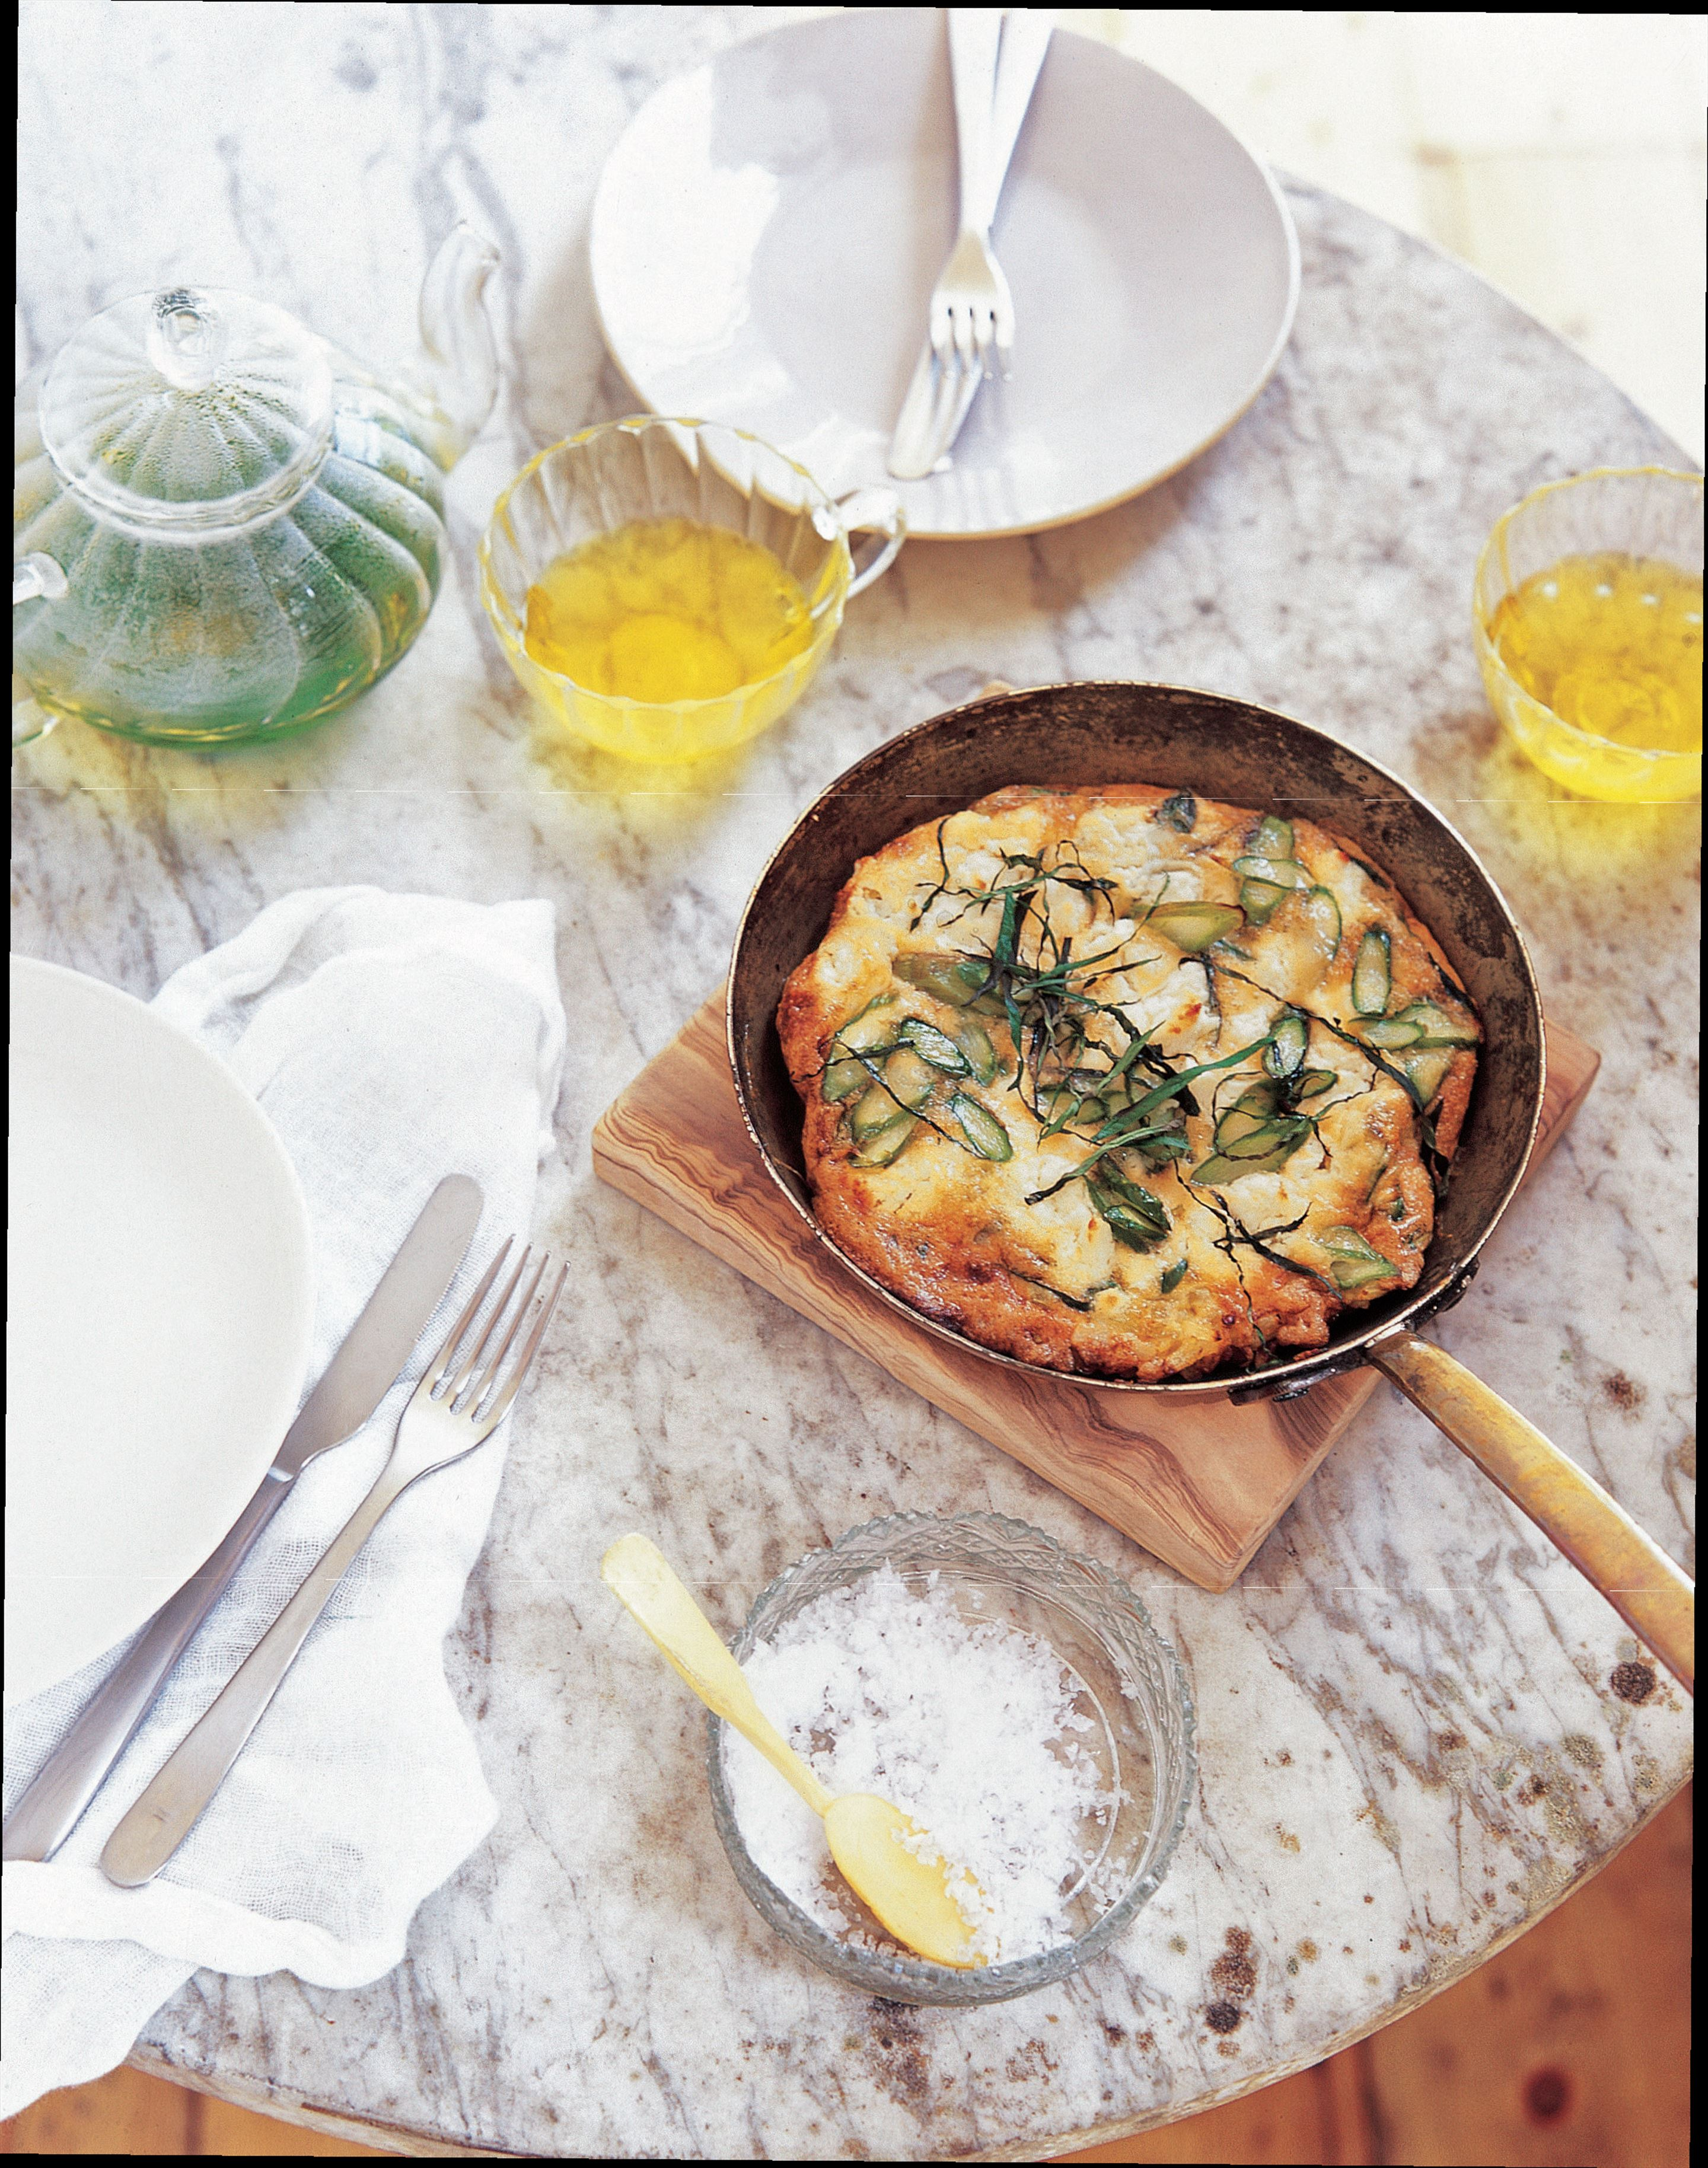 Asparagus and goat's cheese frittata